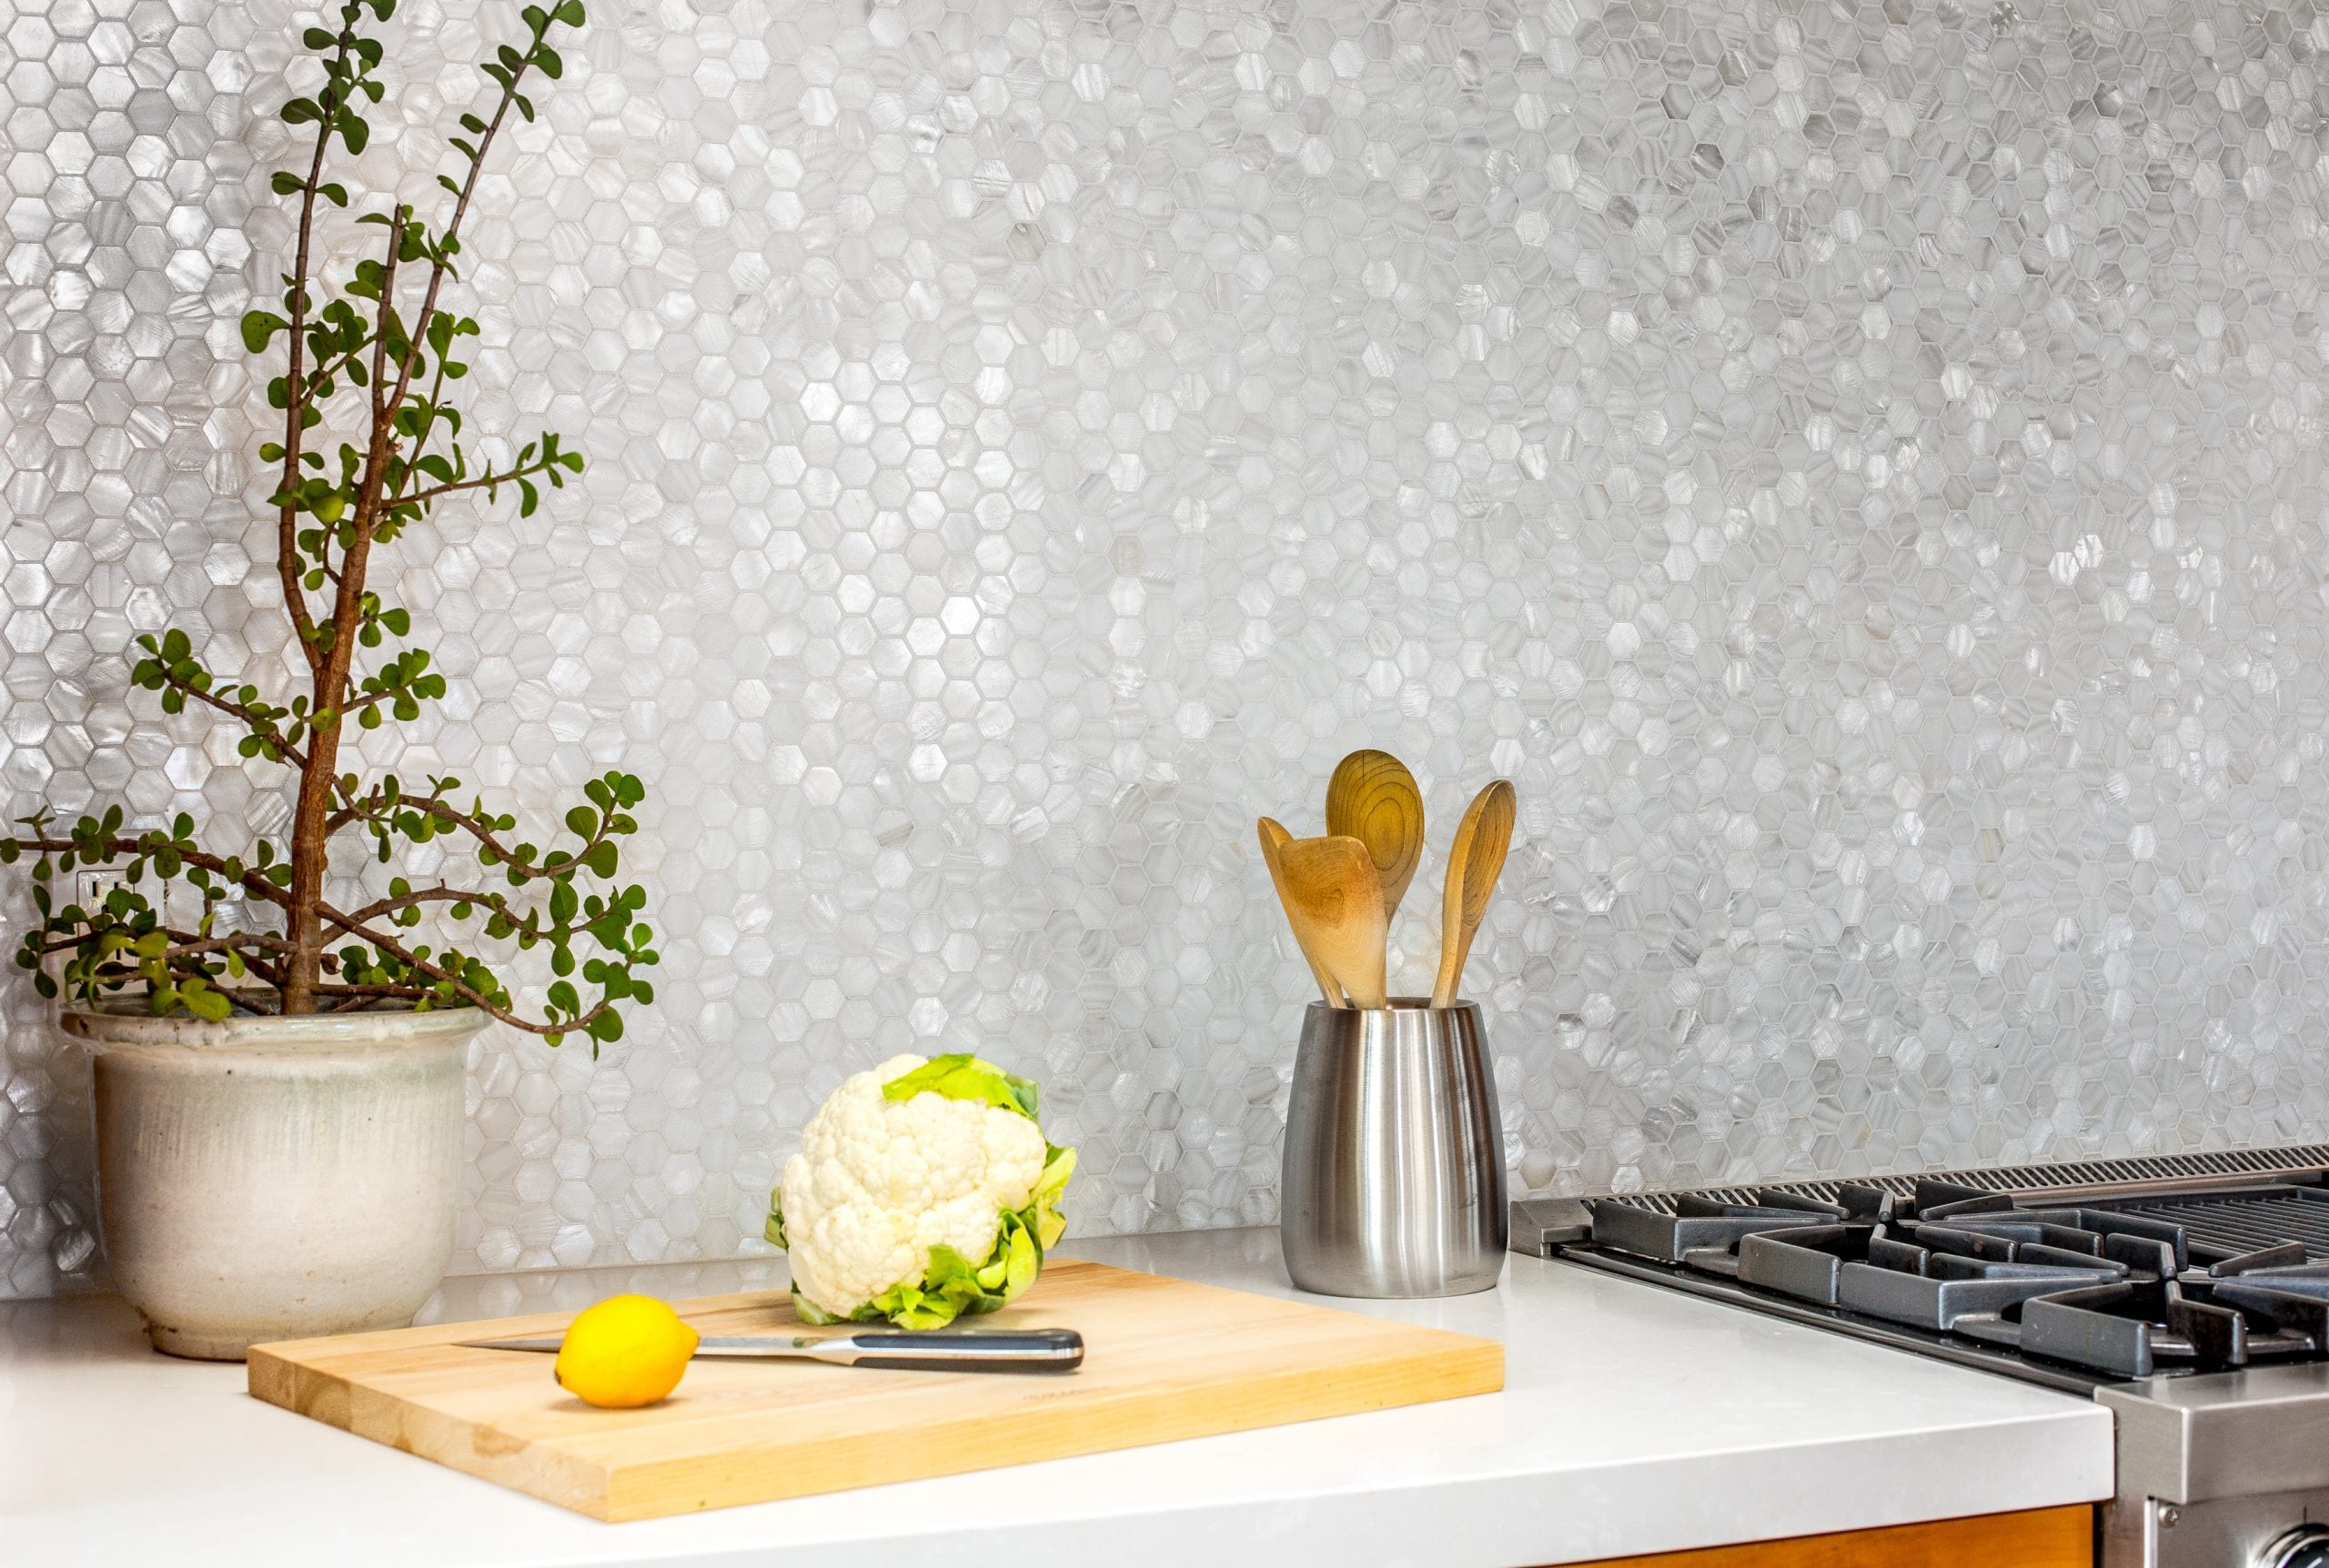 Hex-tile back splash over a kitchen countertop and stove